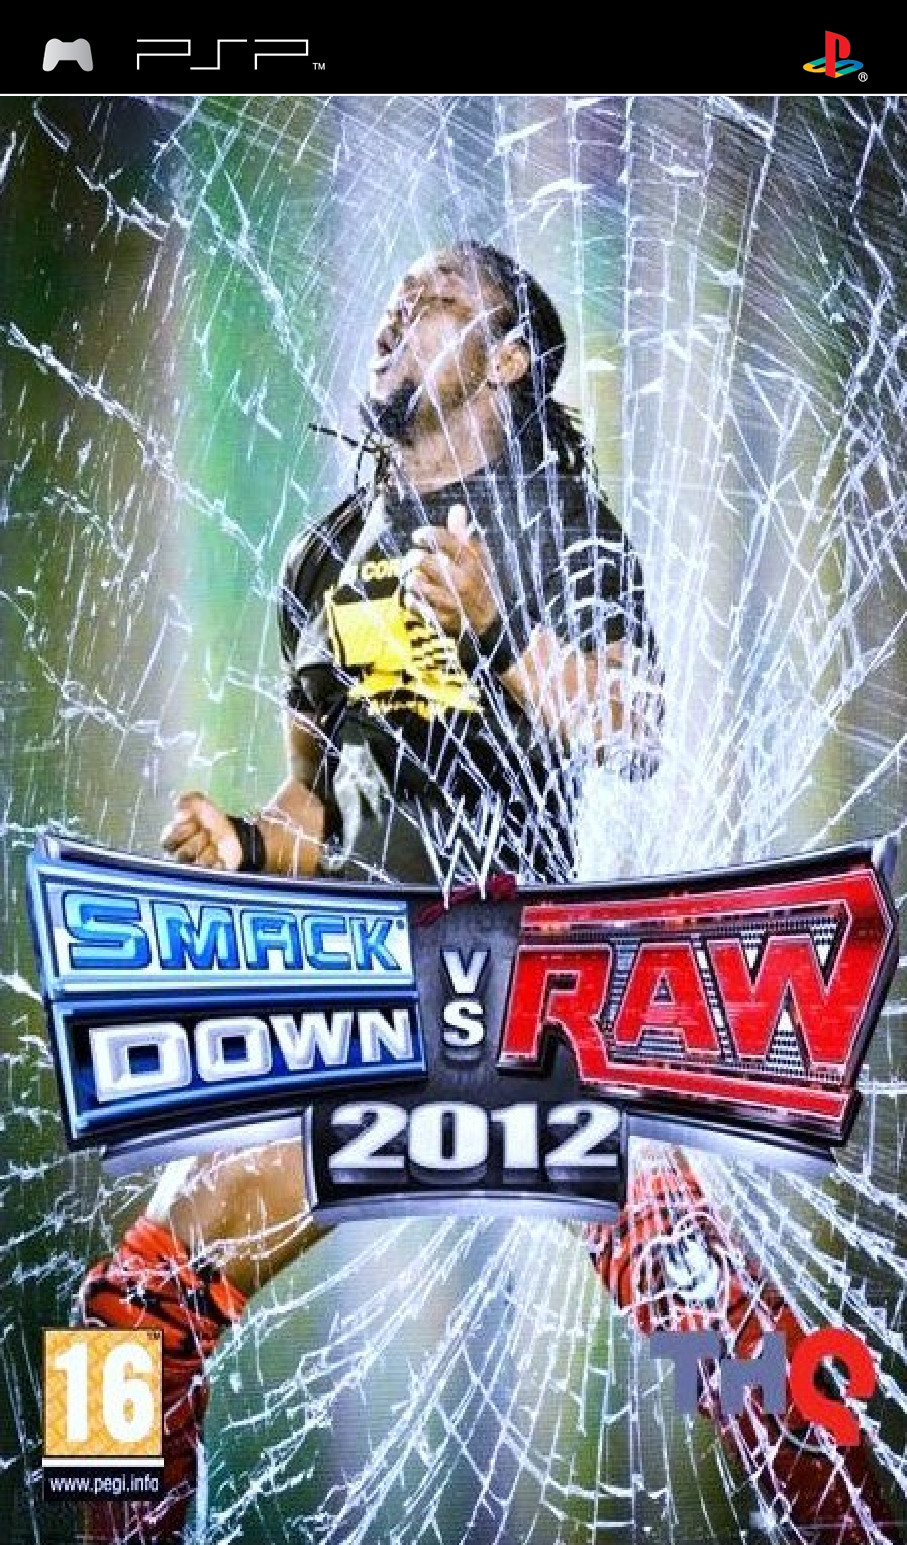 FREE PSP Games Download (Mediafire): [PSP] WWE Smackdown